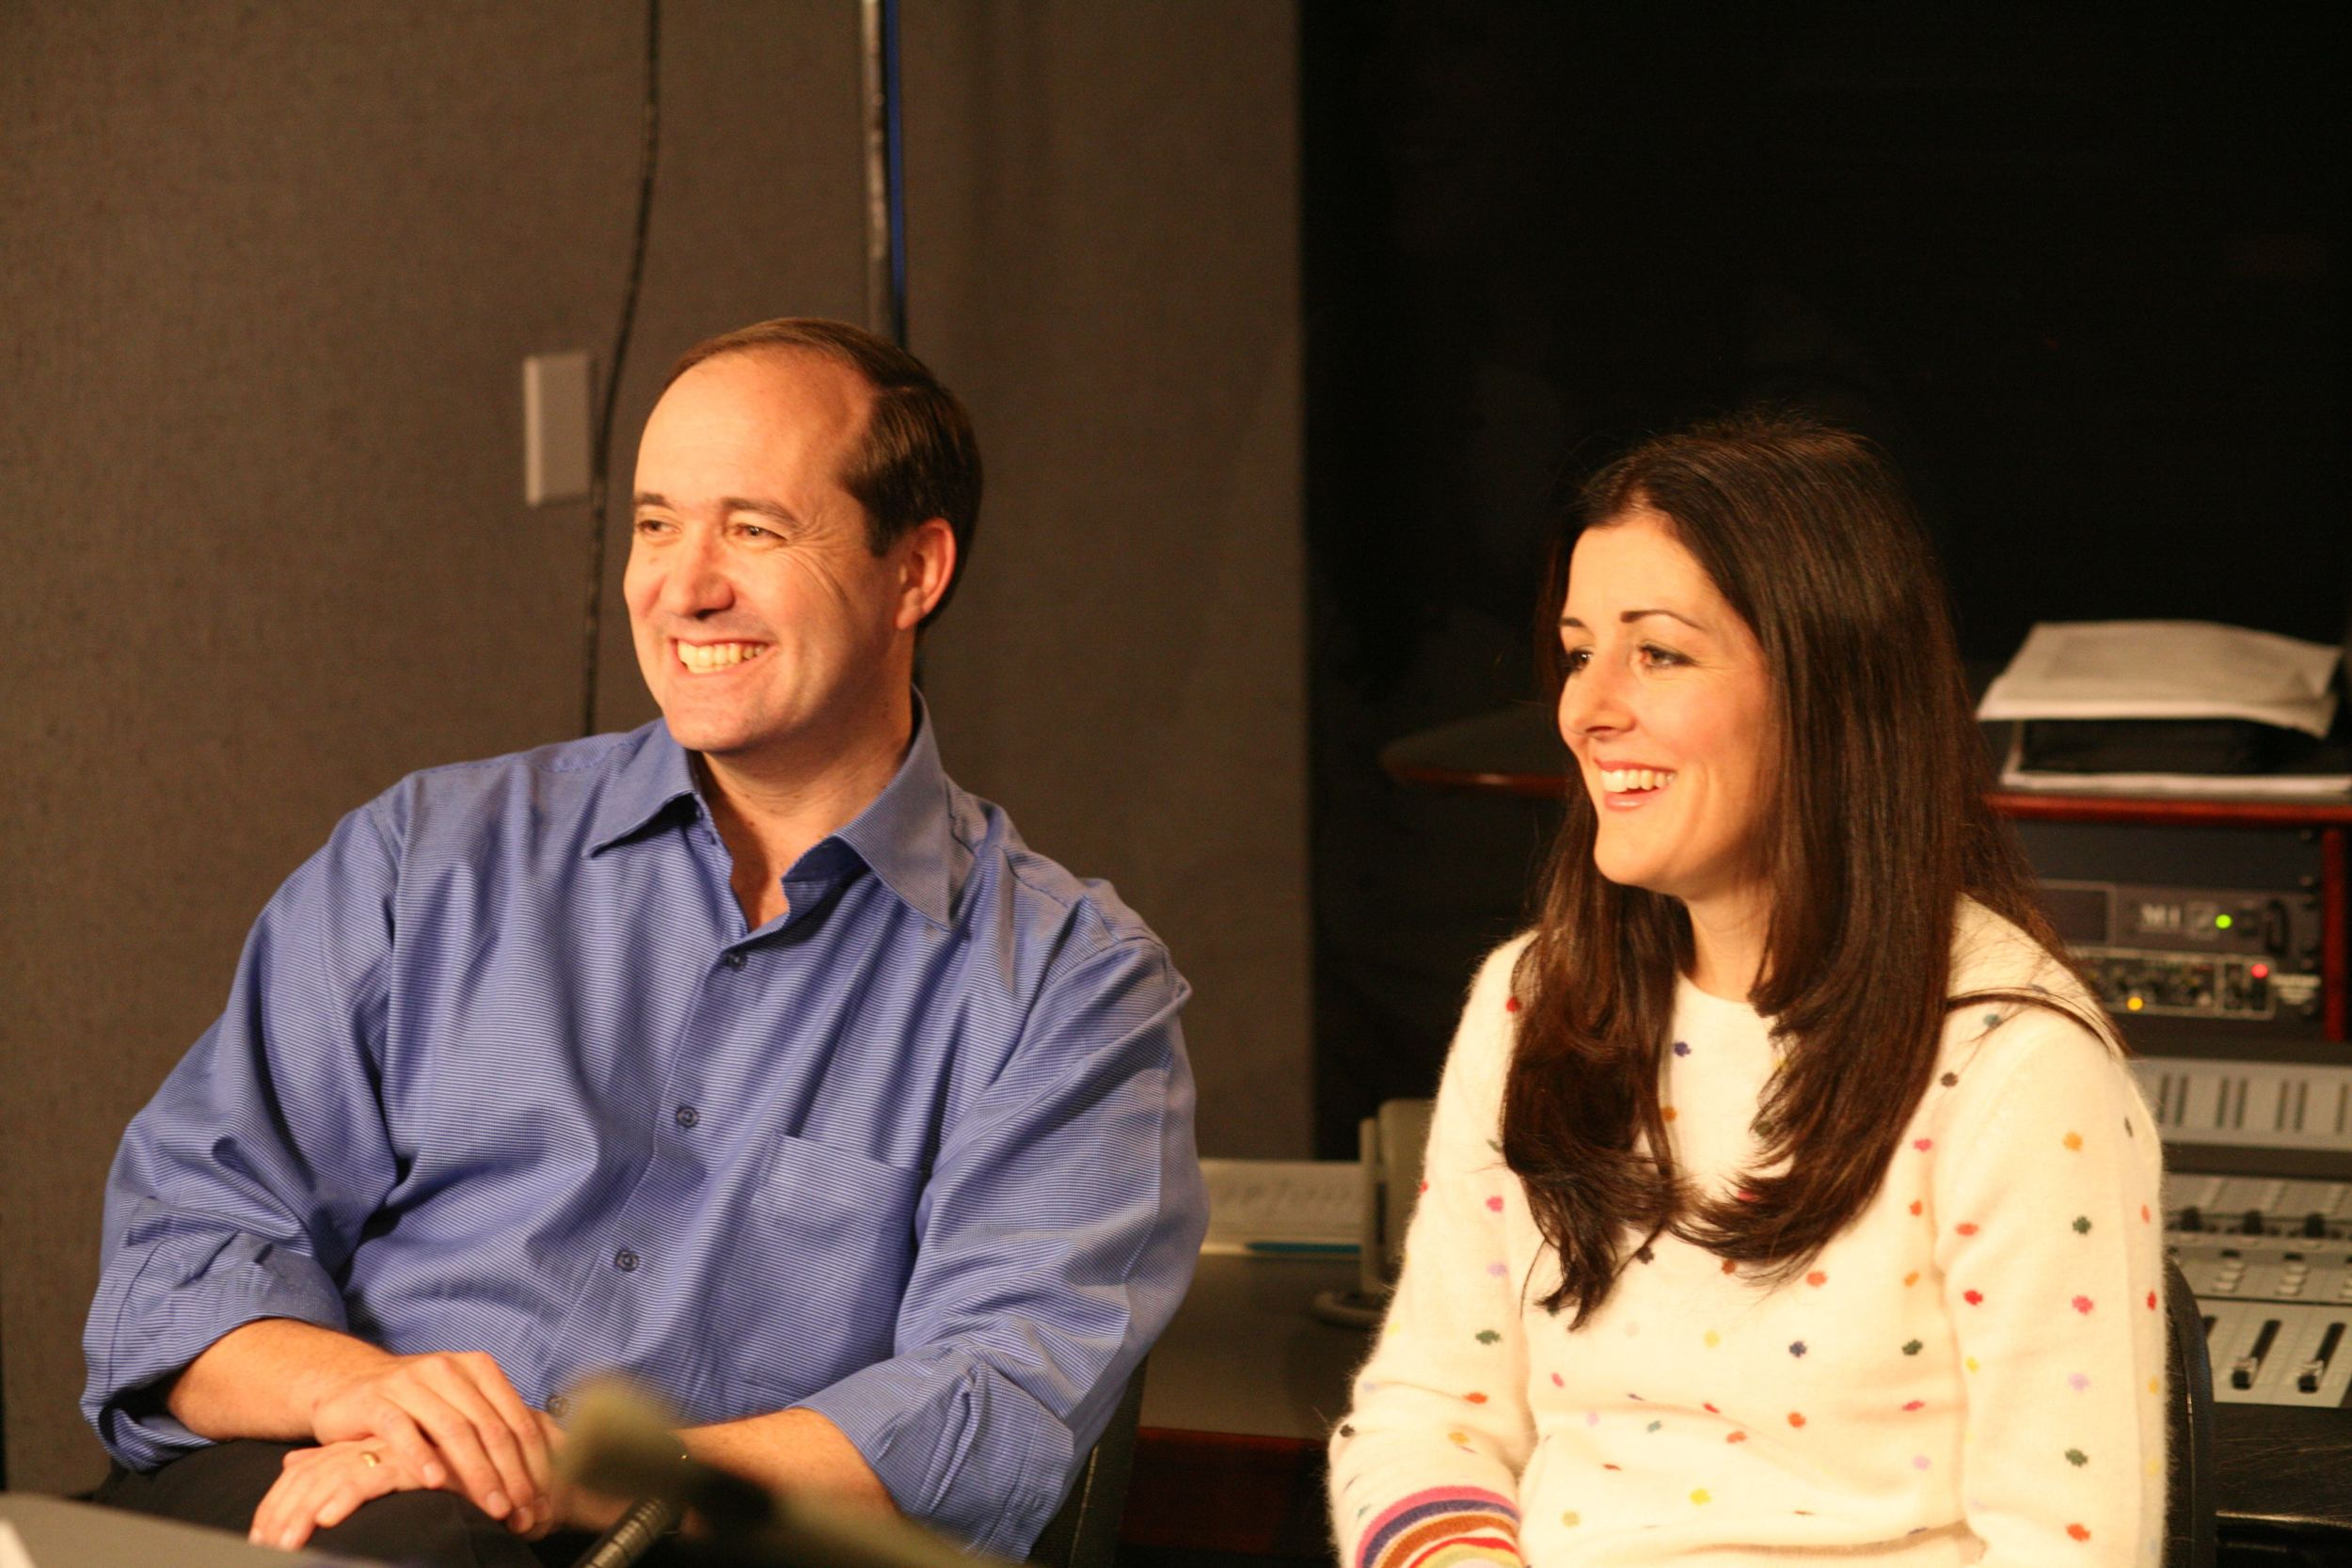 Darrell Van Citters (executive producer) and Ashley Postlewaite (executive producer) smile as they're interviewed behind the scenes